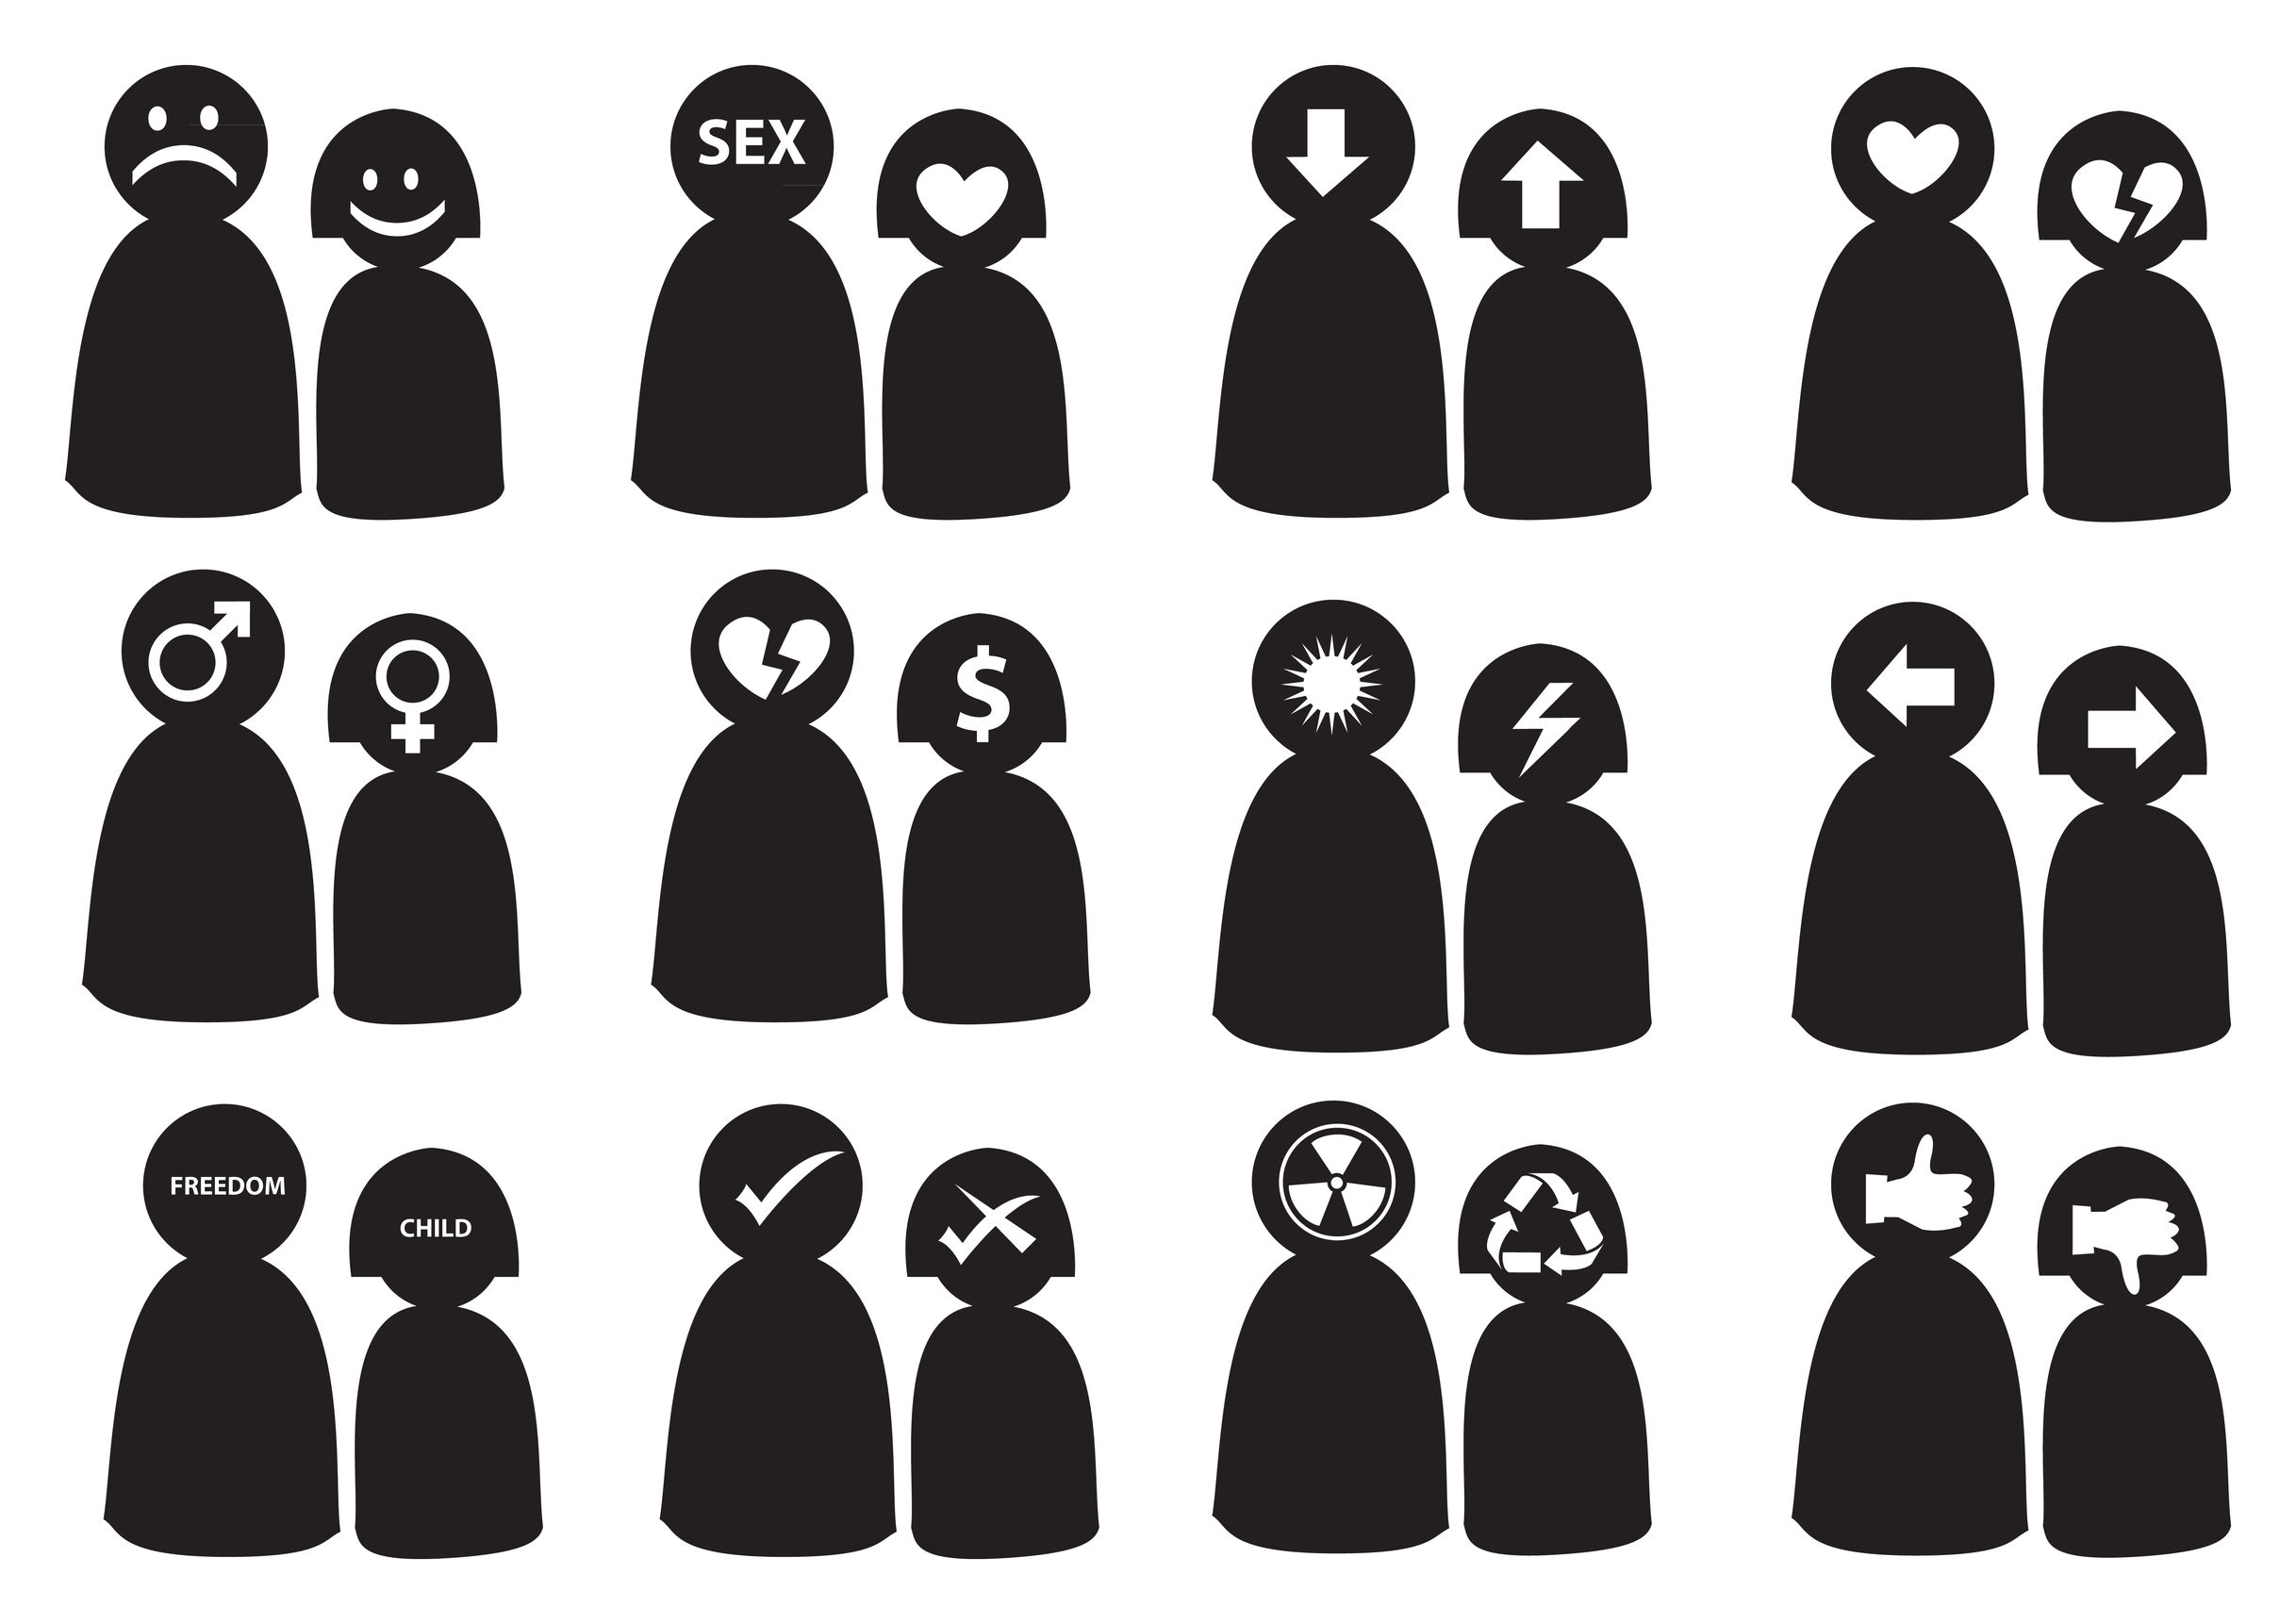 30569705 - illustration for differences in man's and woman's thinking. conceptual icon set.